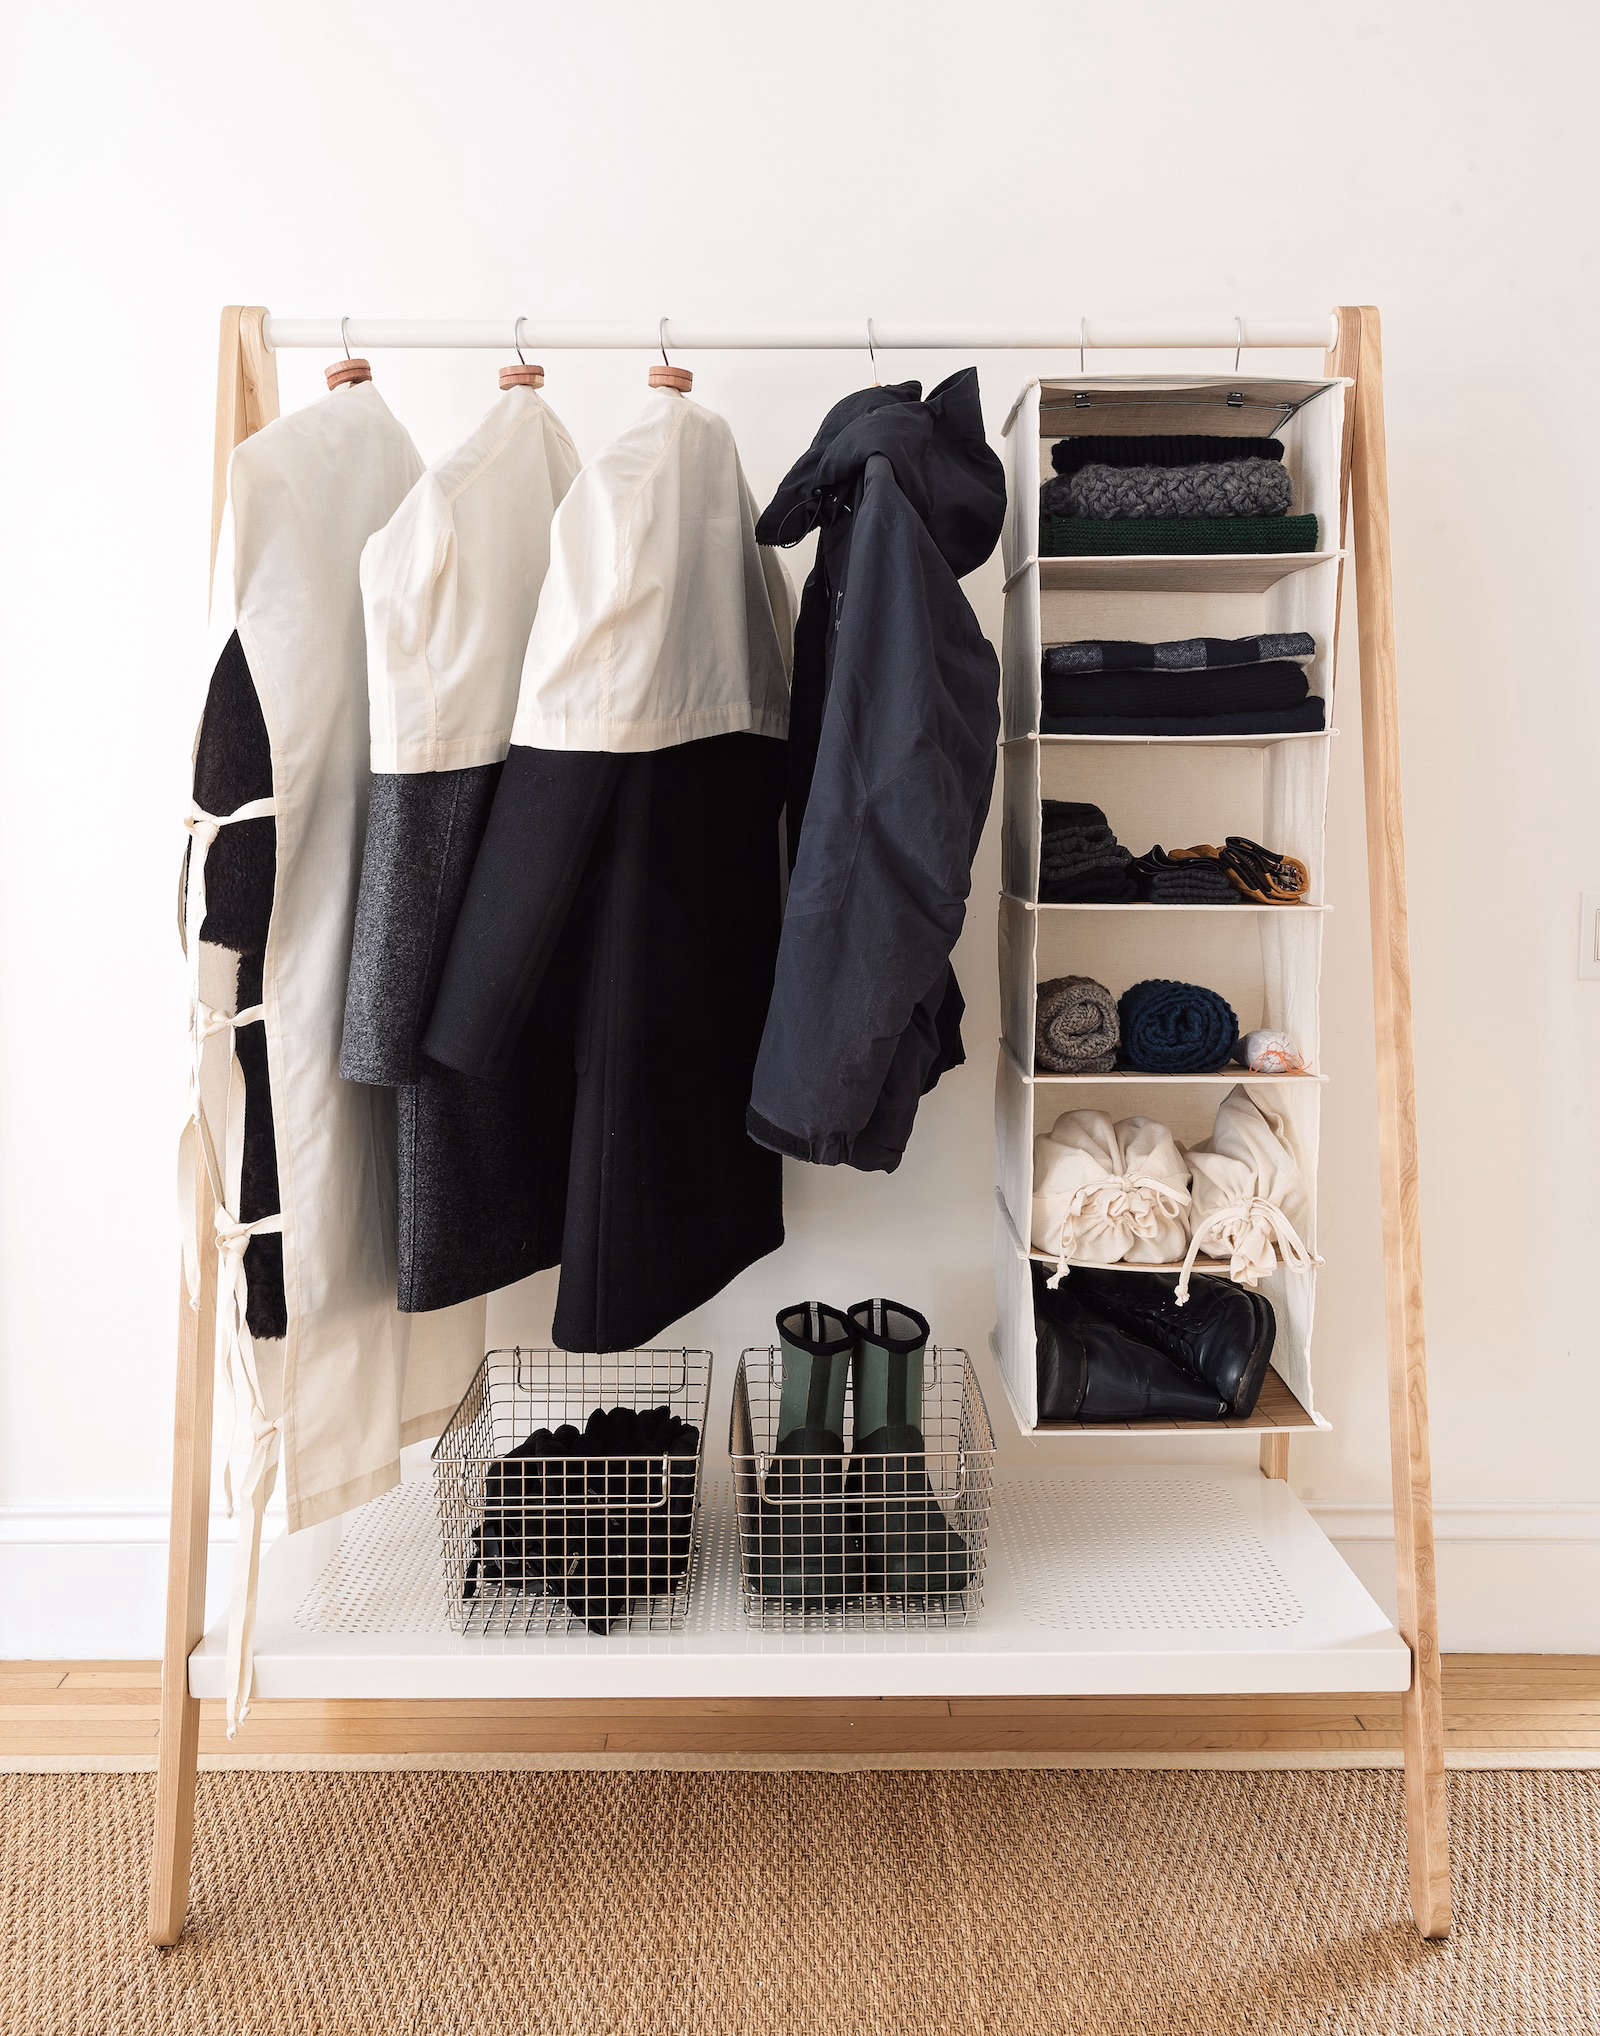 5 Tips For Storing Your Out Of Season Clothing The Organized Home